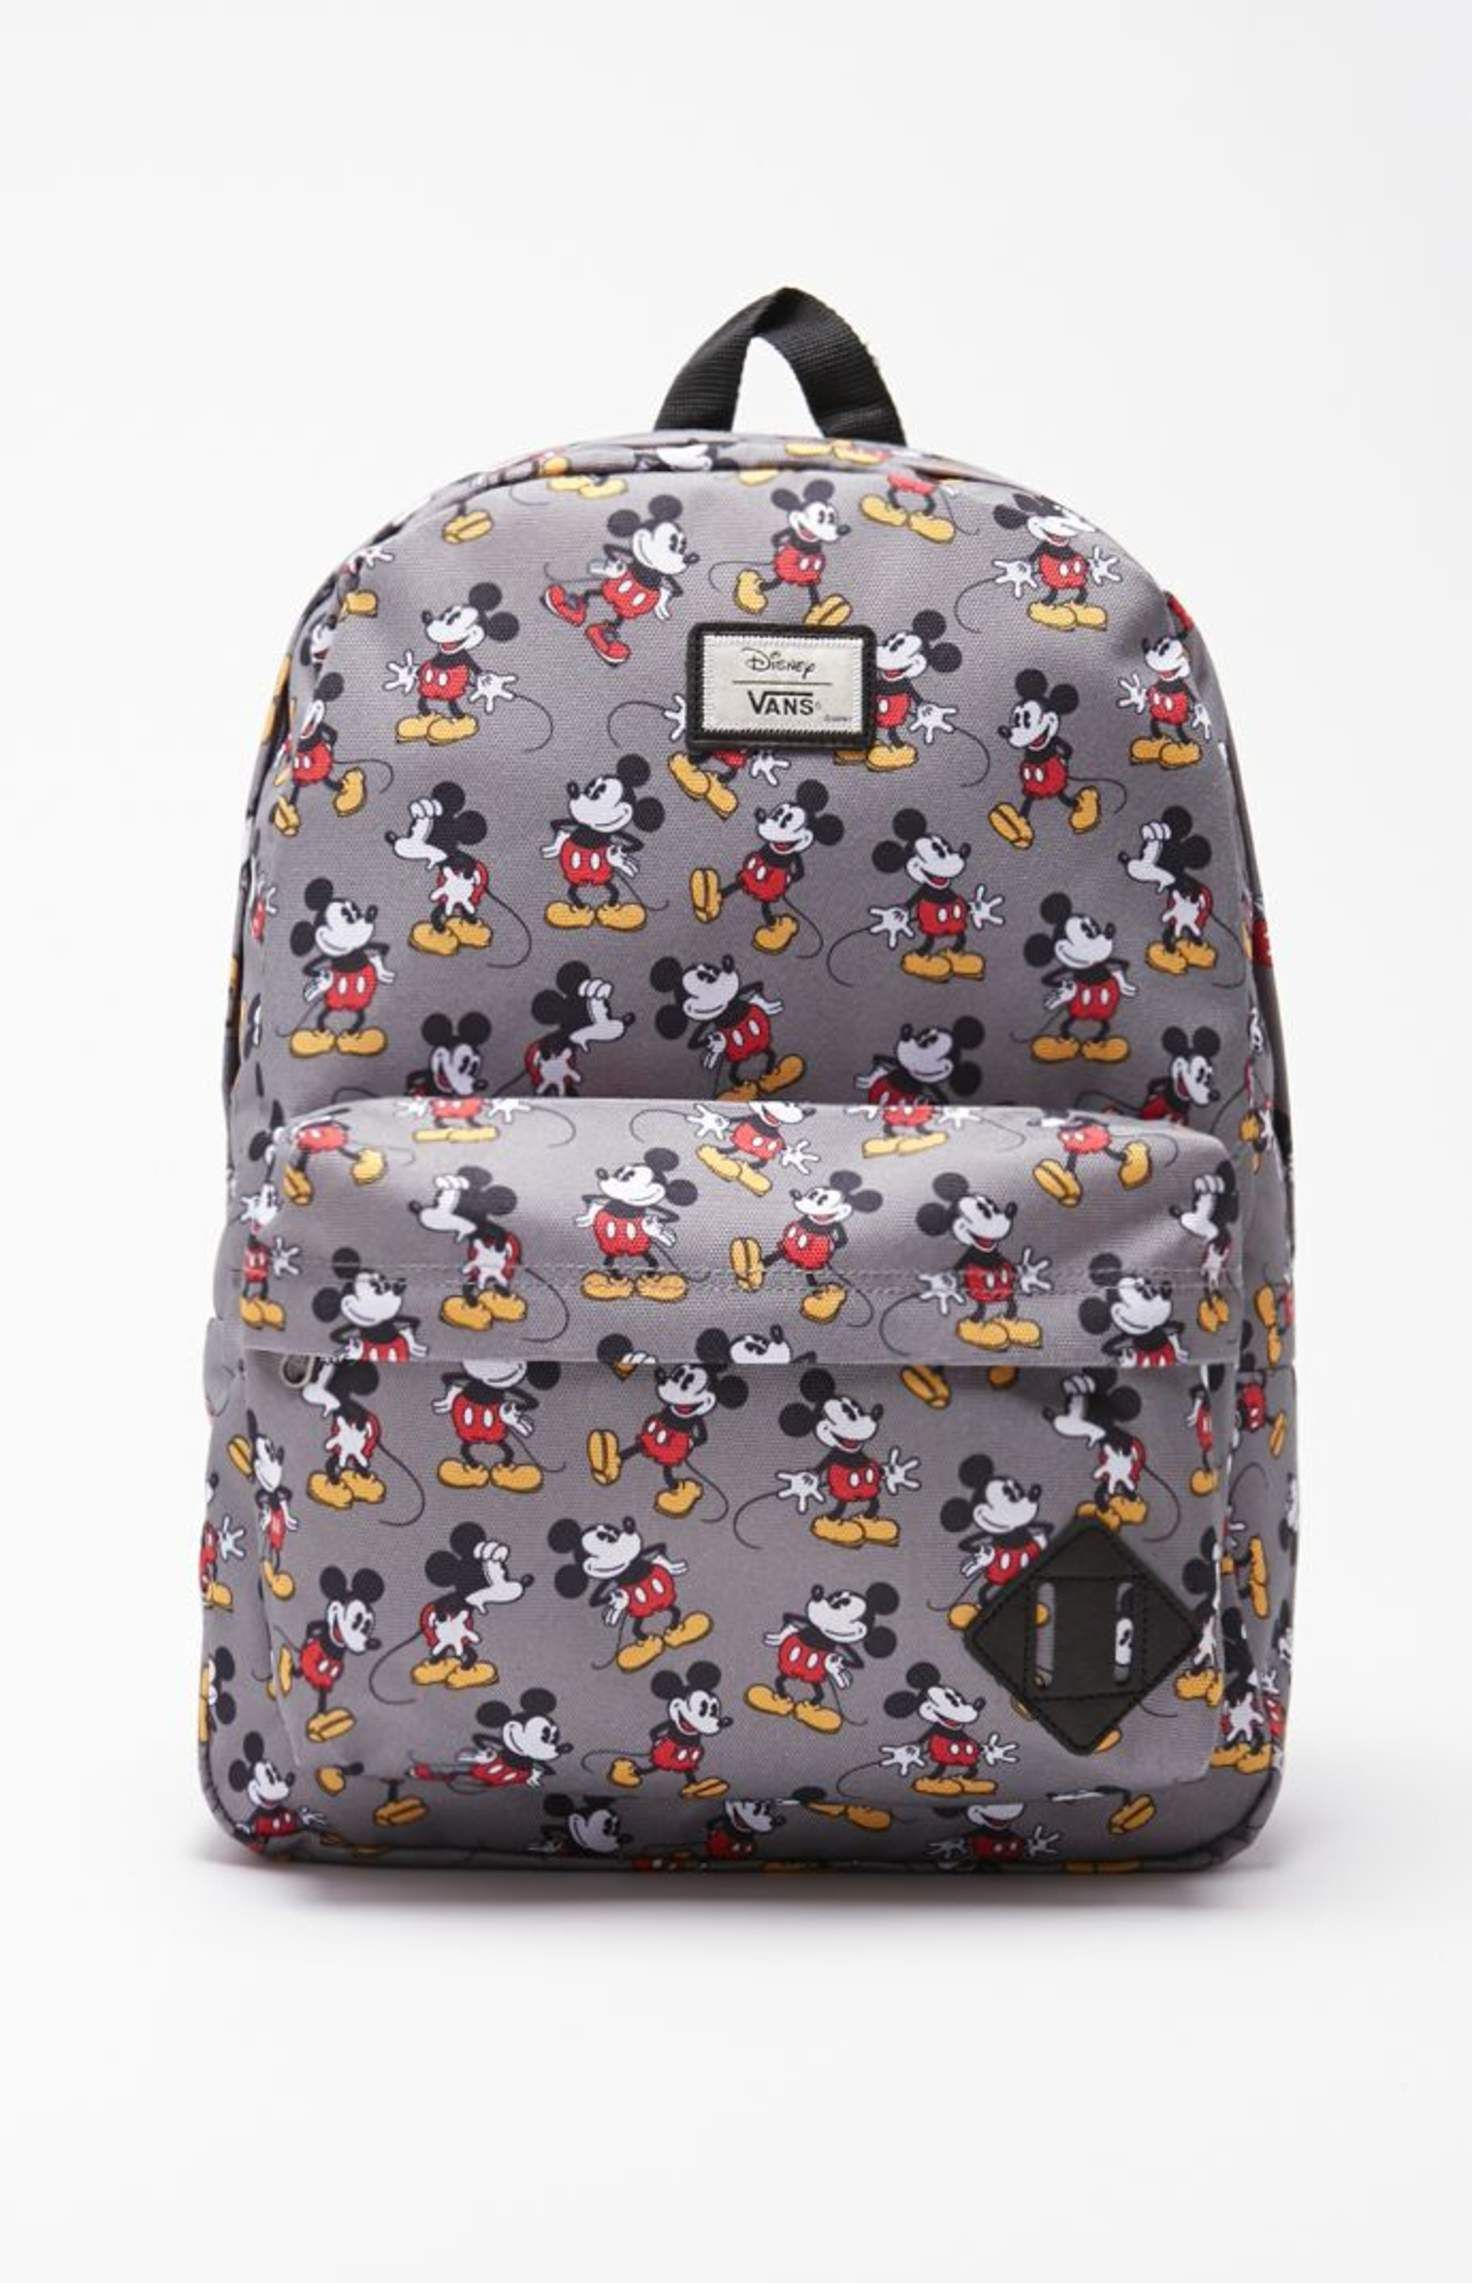 Vans - Disney Old Skool II Mickey Mouse School Backpack - Mens Backpacks -  Gray - NOSZ a9410c5a3b55f